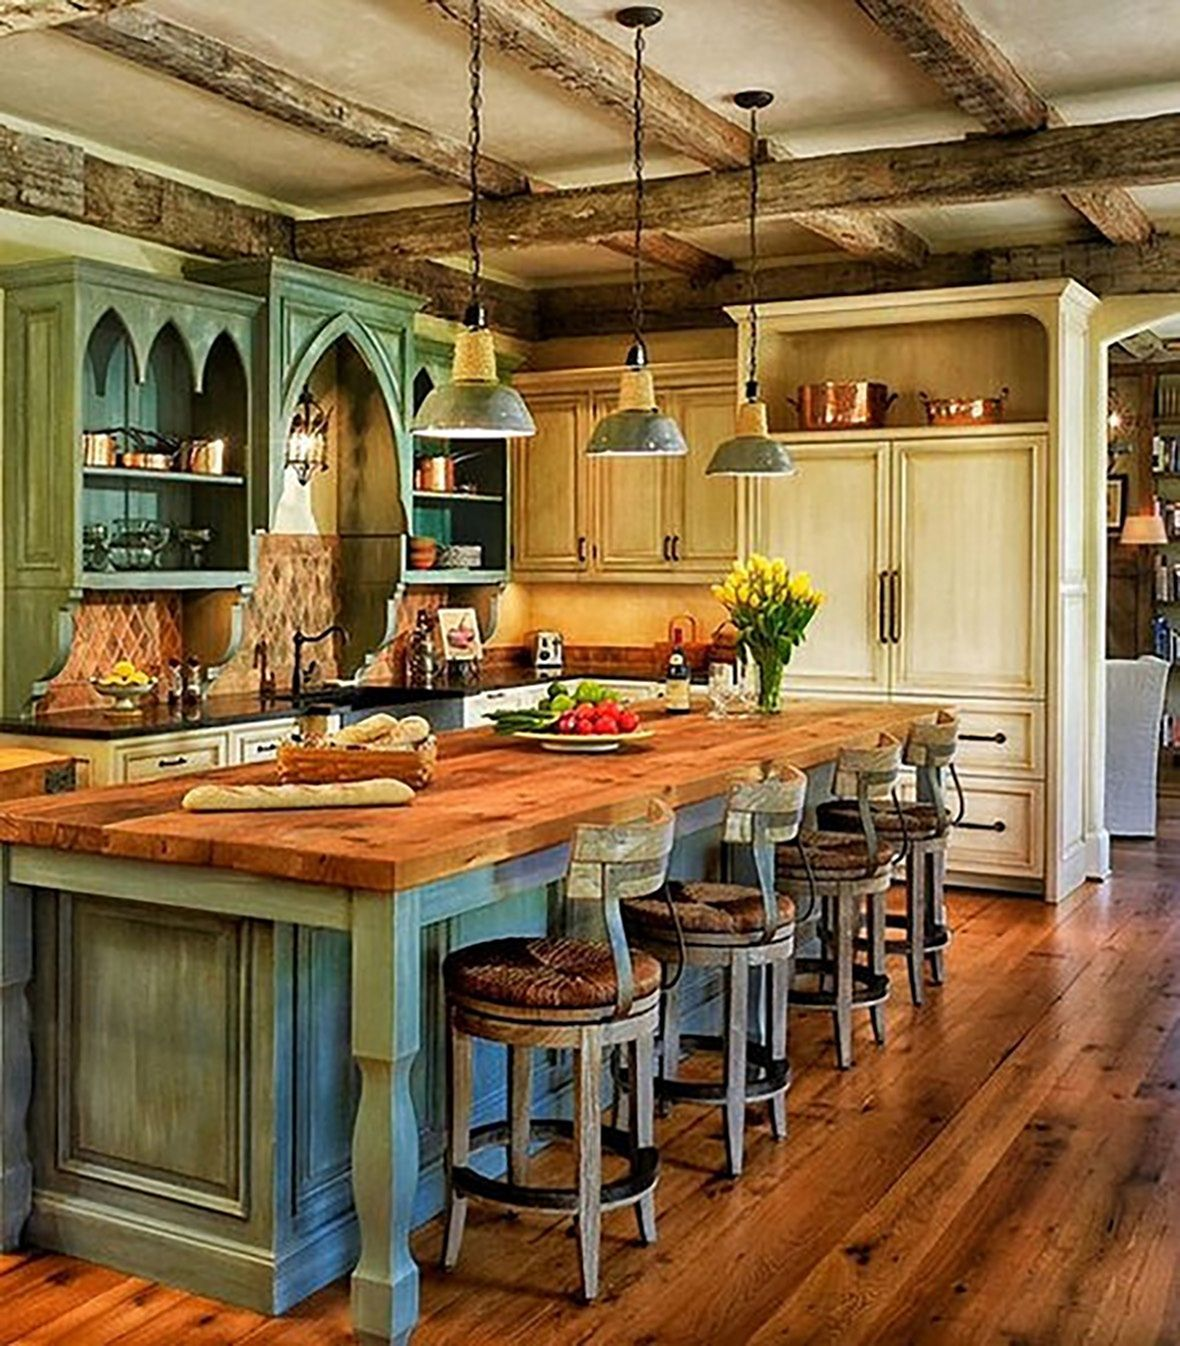 12 Most Gorgeous Rustic Small Kitchen Design Ideas #rustickitchendesigns